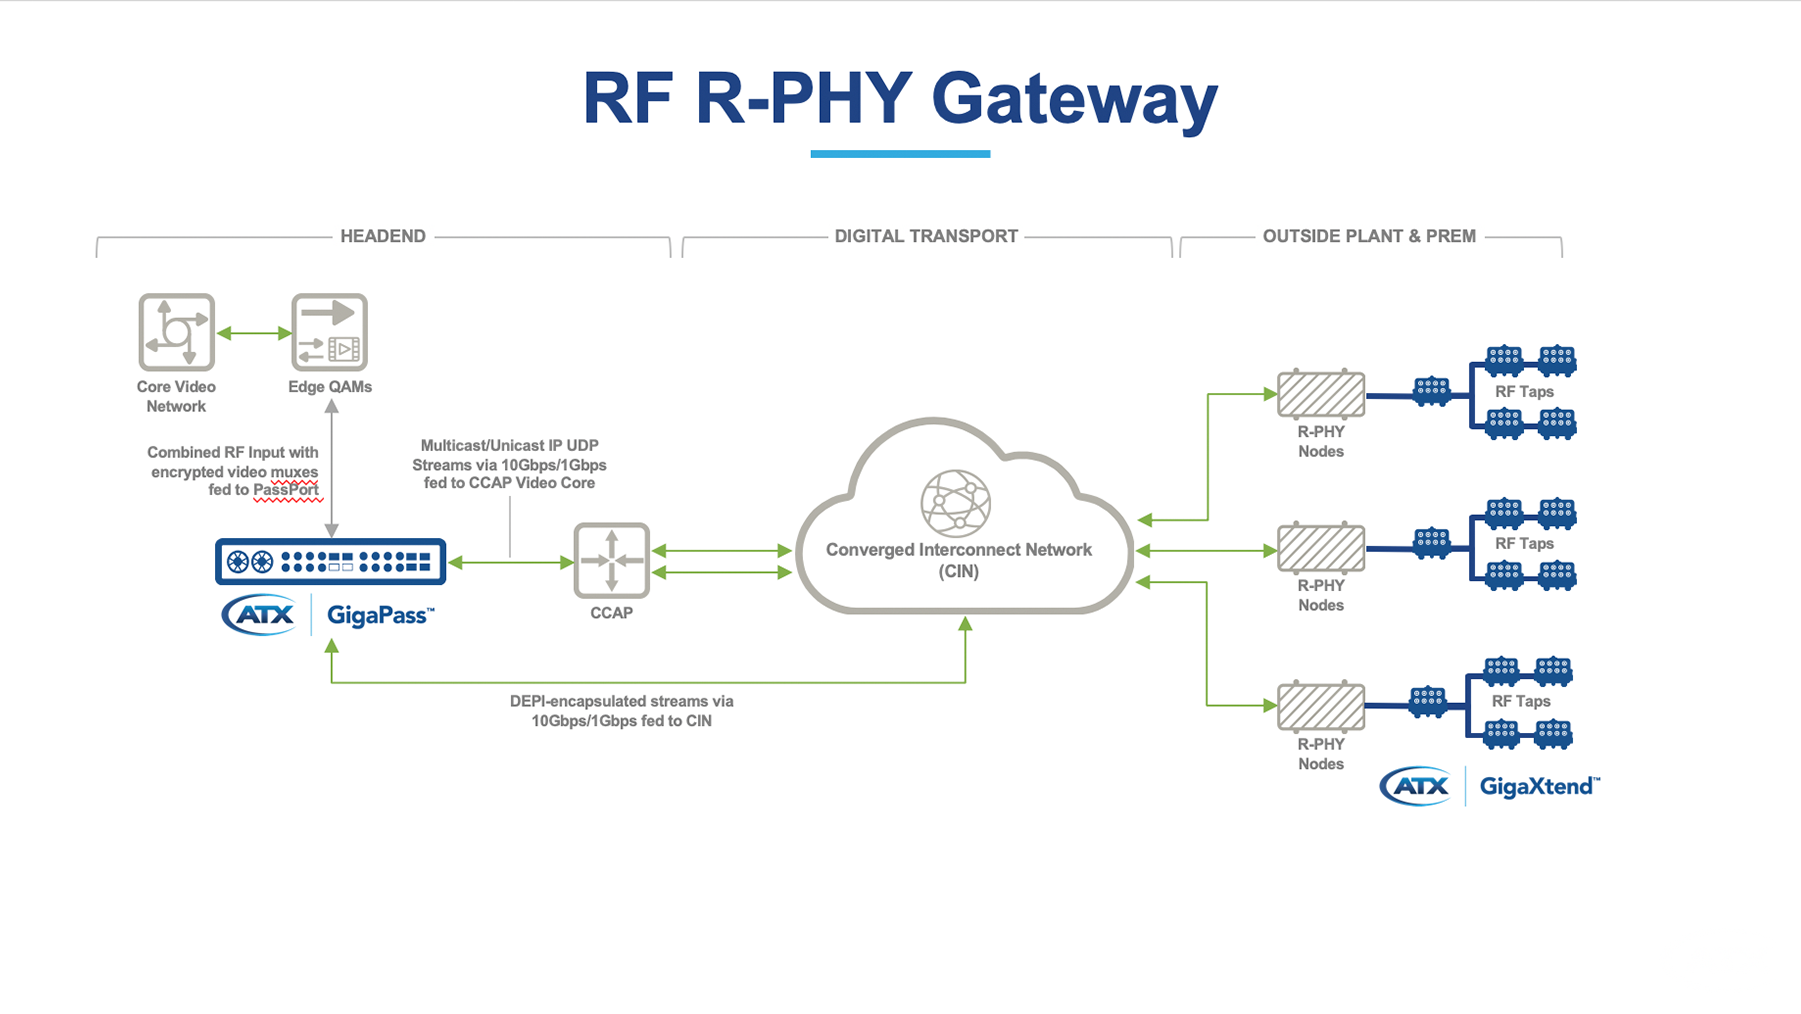 https://atx.com/wp-content/uploads/product-diagram-RF-R-PHY-Gateway-013019-1.png